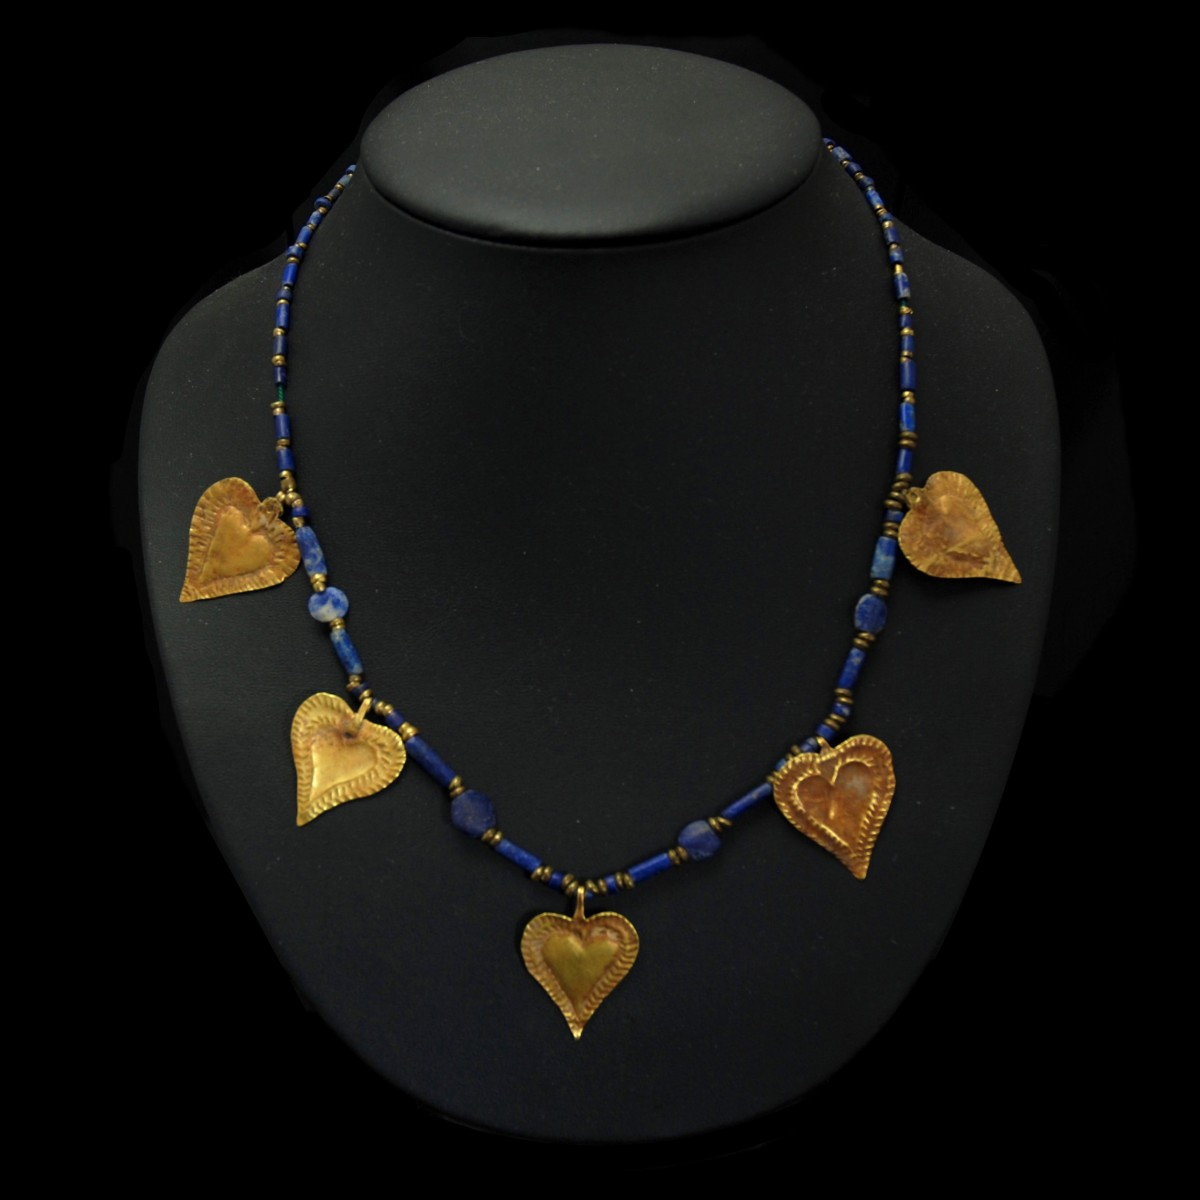 Sumerian gold necklace